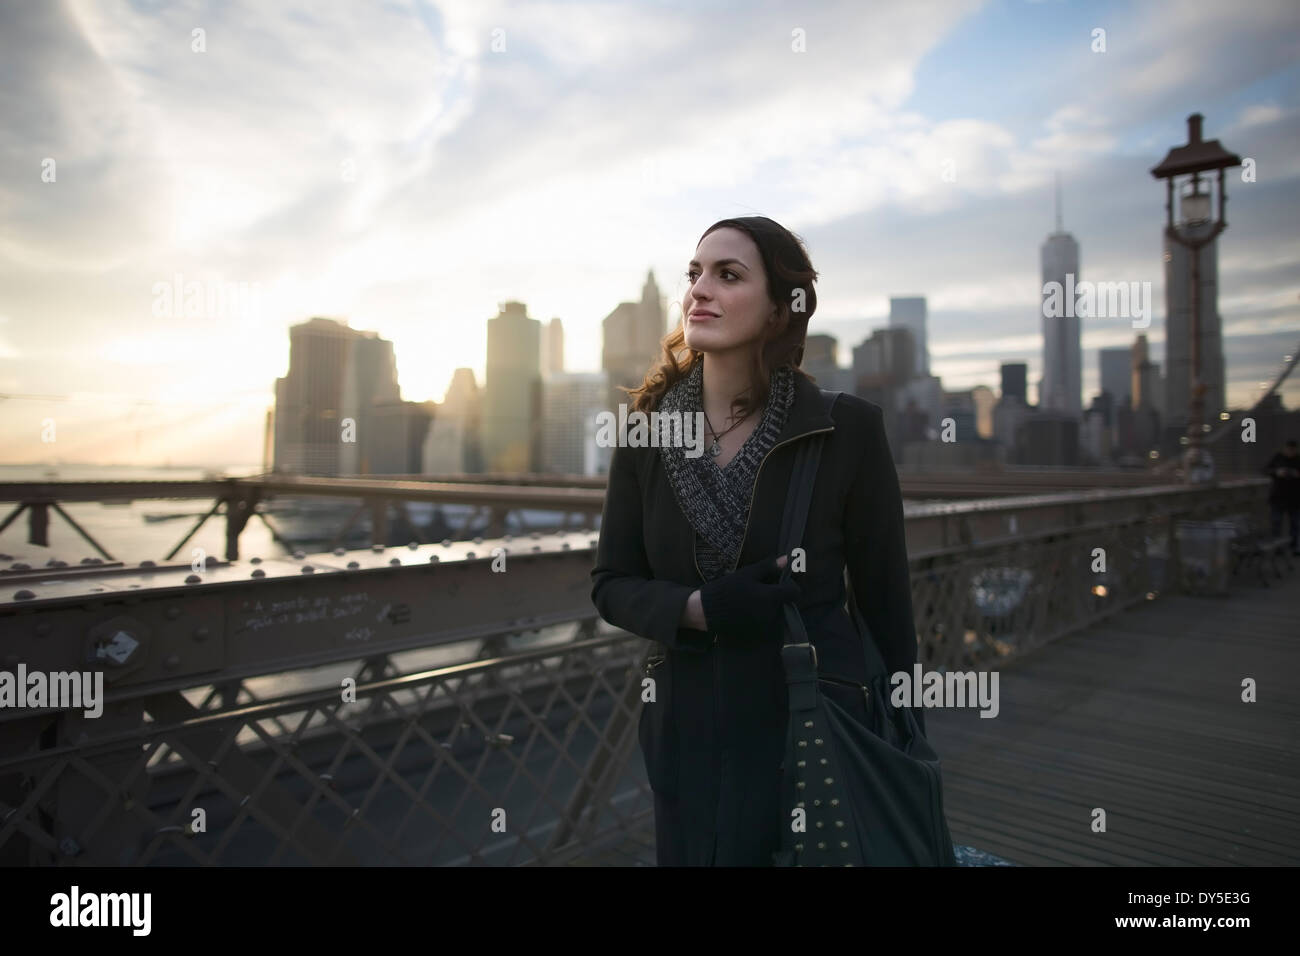 Young woman strolling on Brooklyn bridge, New York, USA - Stock Image